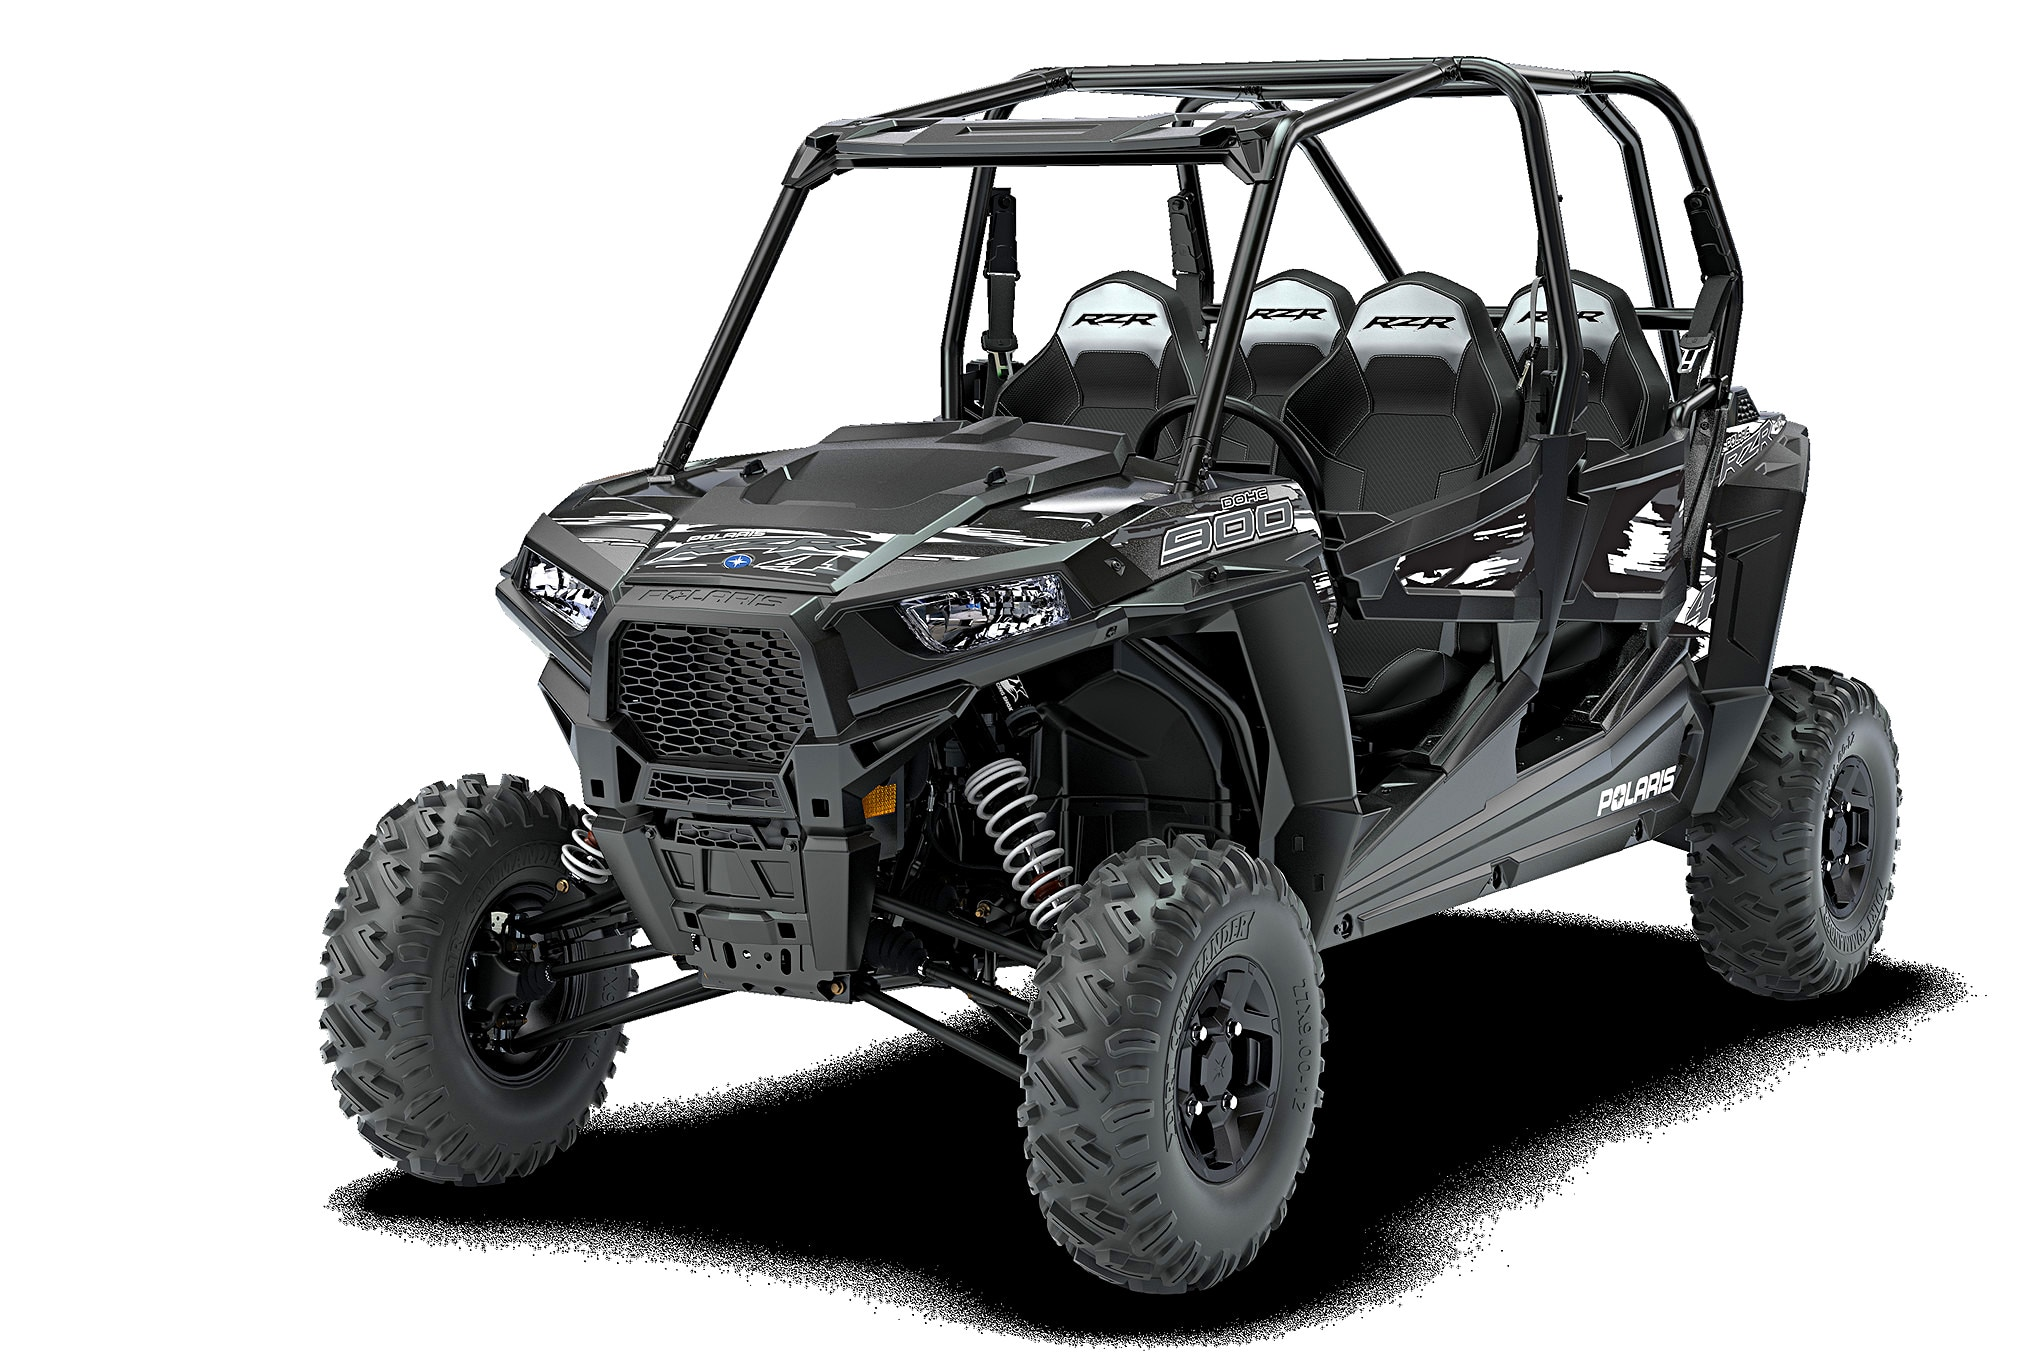 035 utv guide polaris rzr s 900 front three quarter